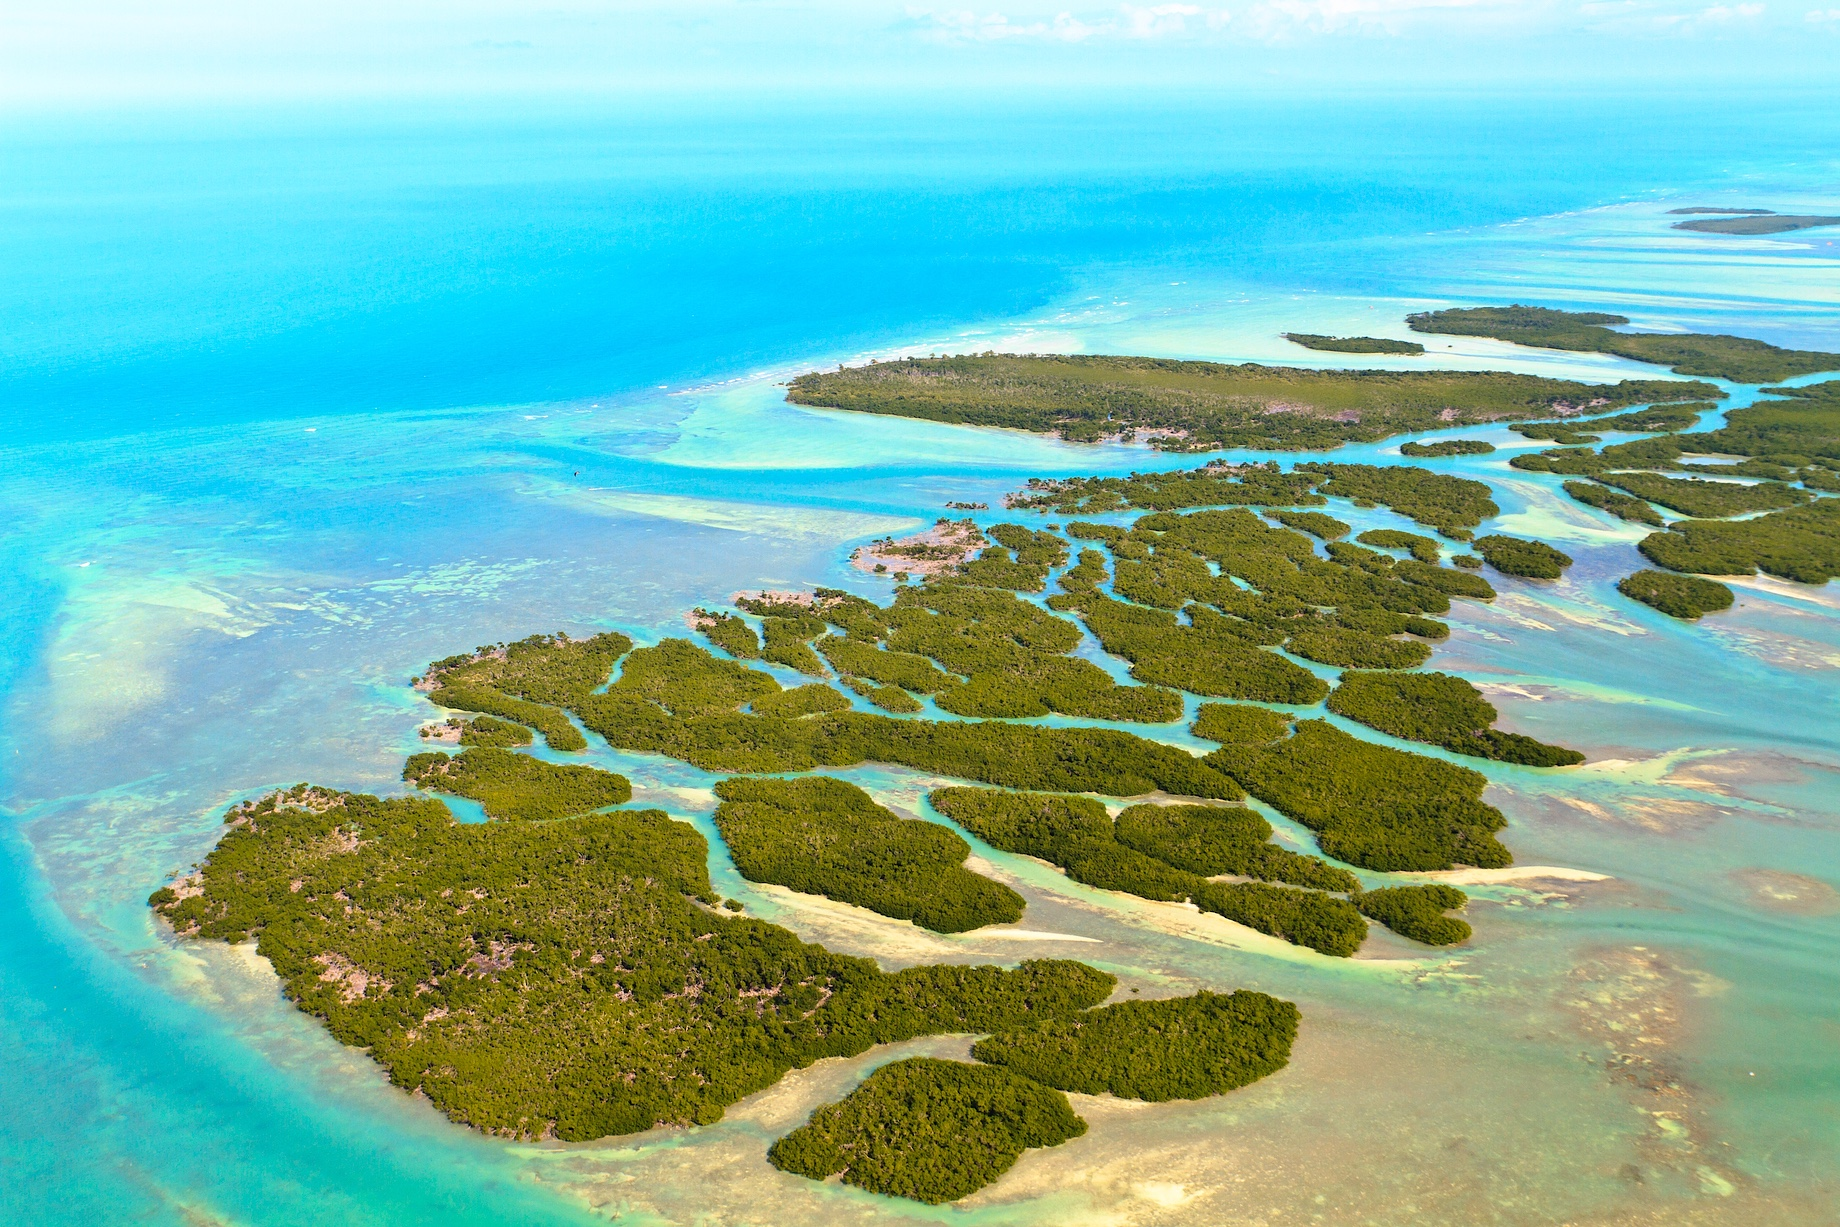 Aerial View - Islands of The Florida Keys - United States